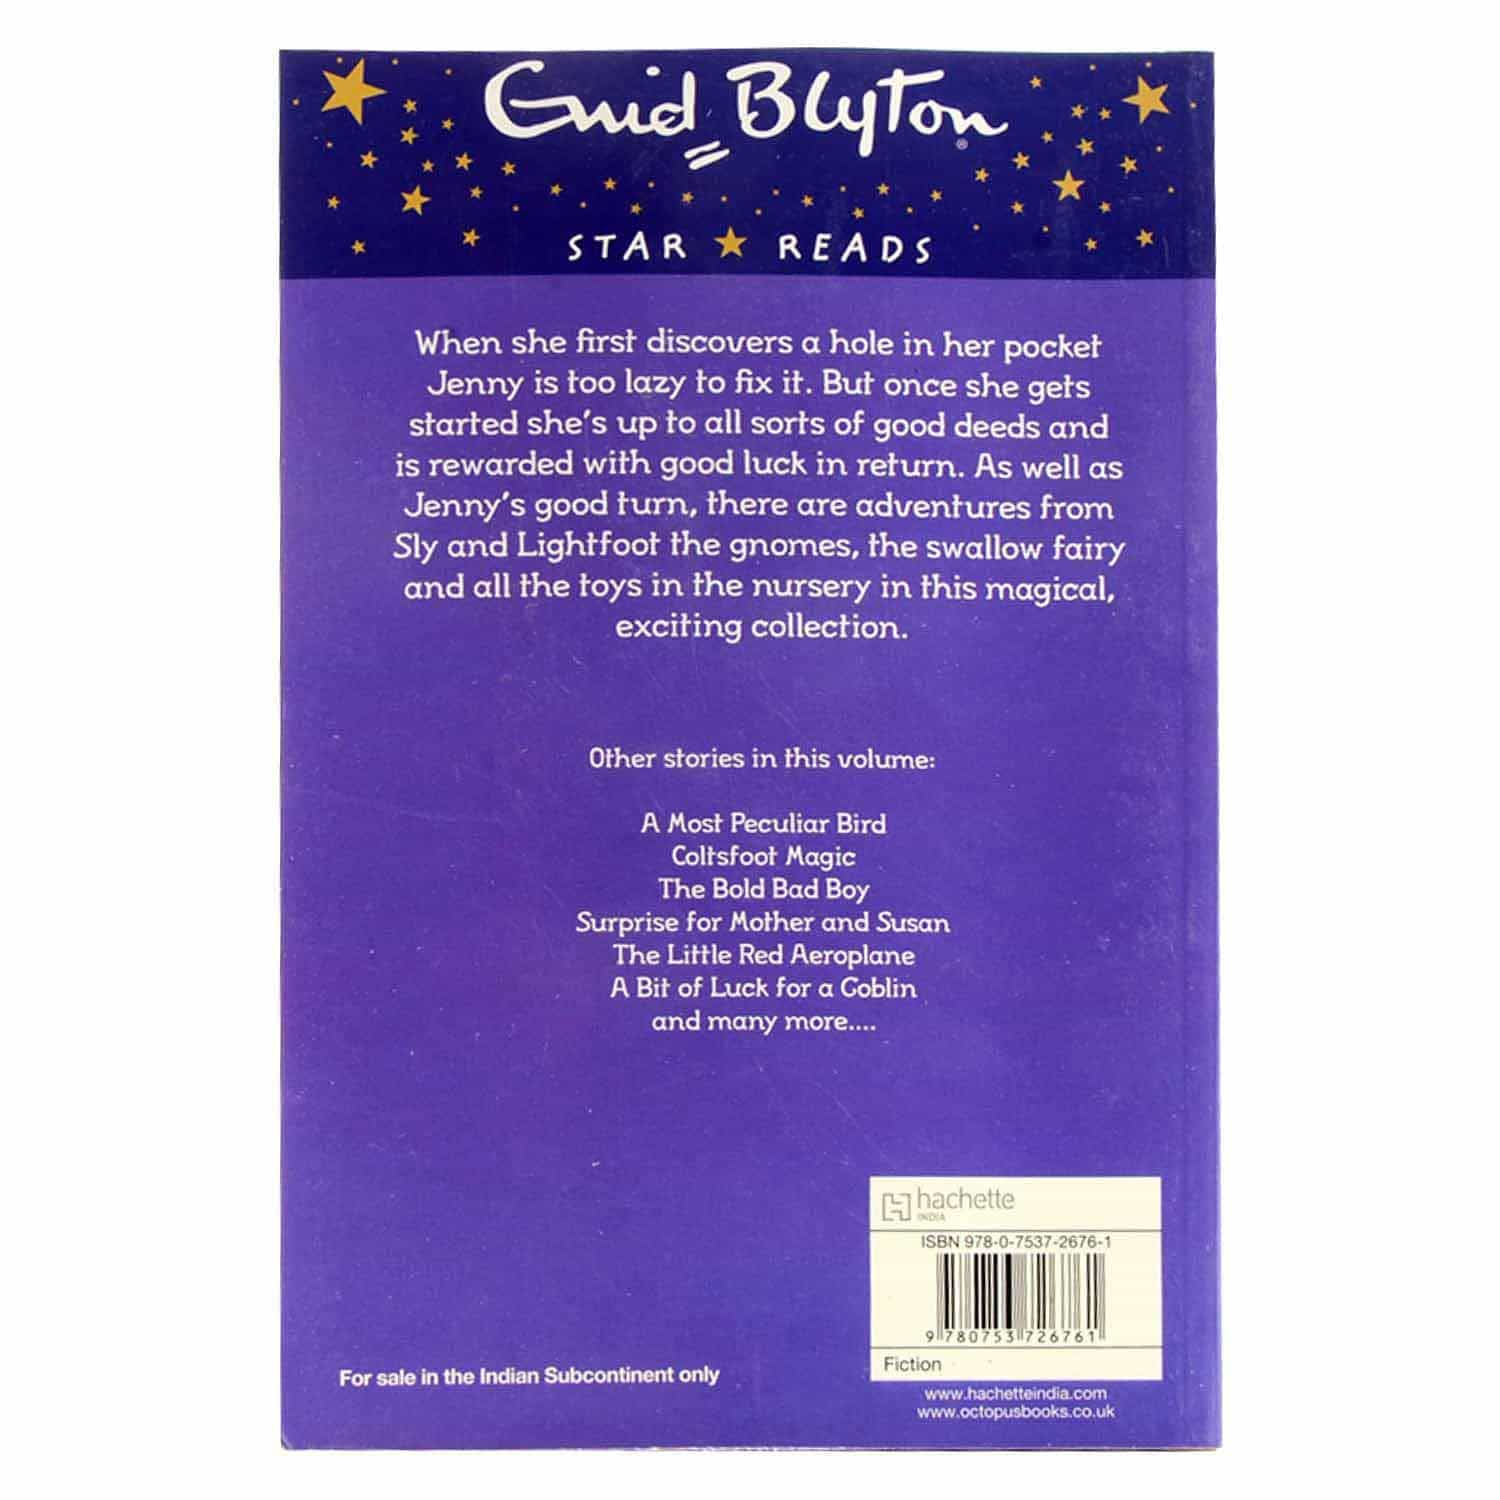 Enid Blyton - A Hole in Her Pocket and Other Stories